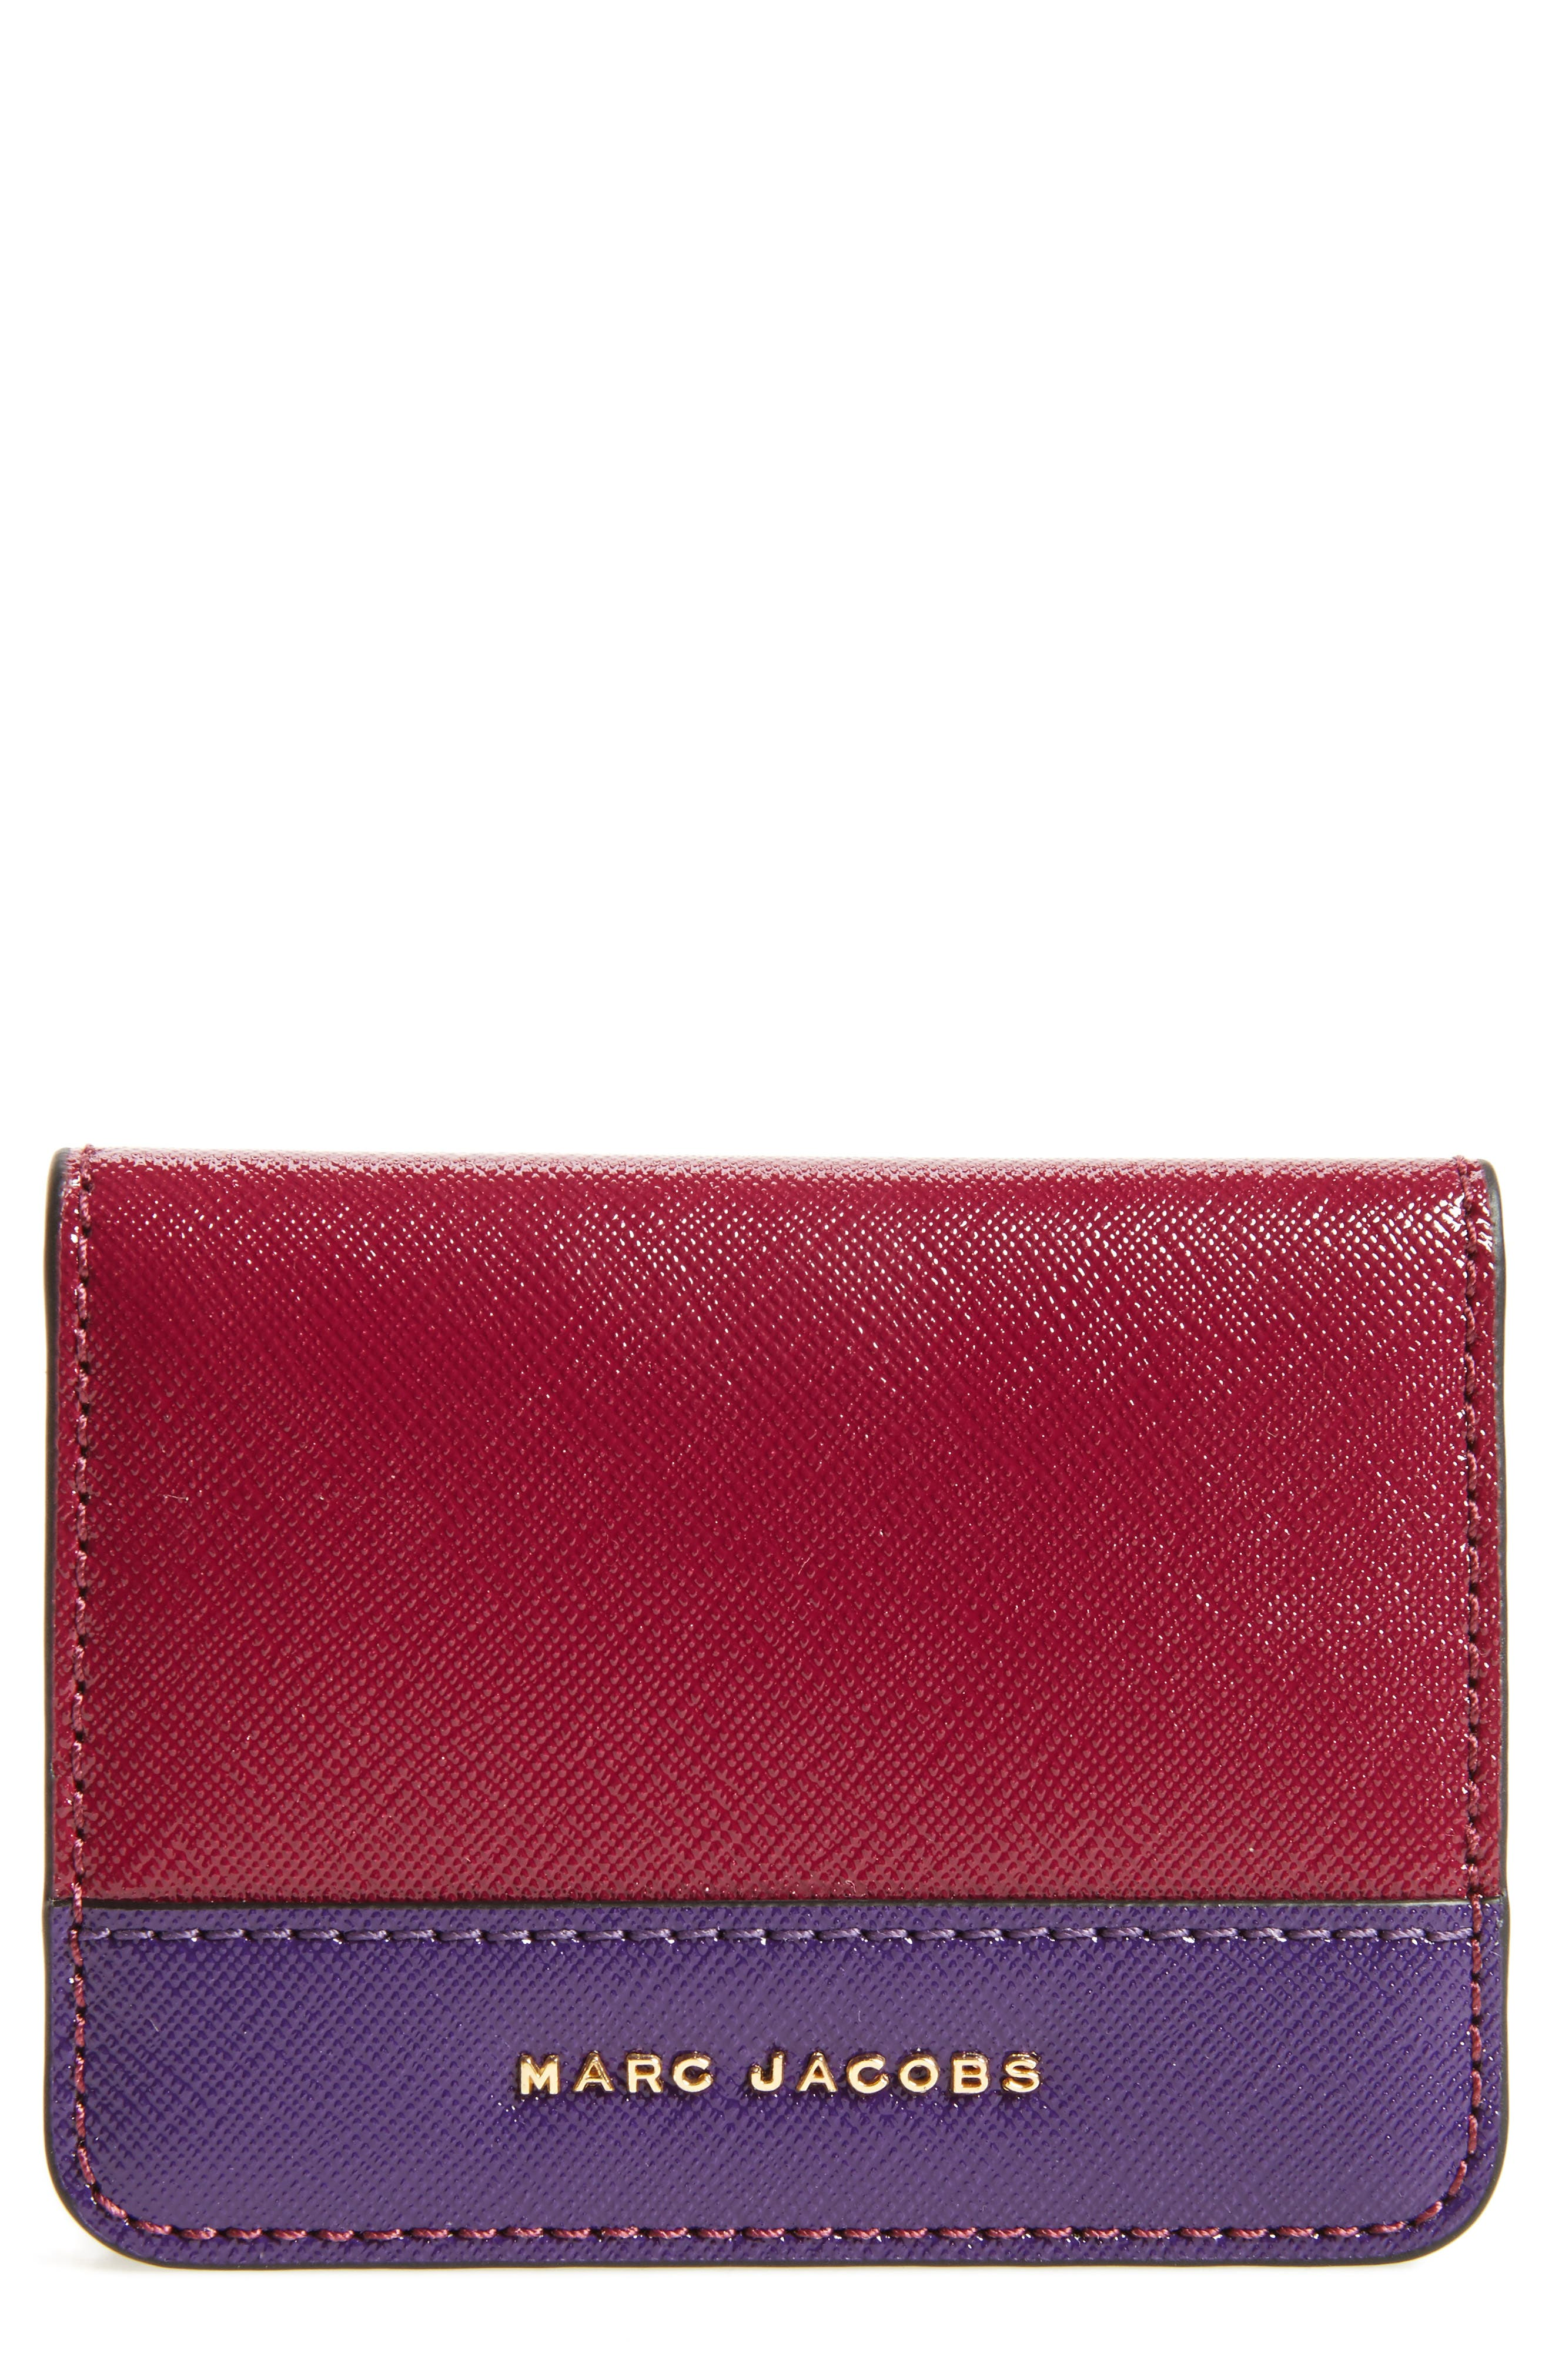 MARC JACOBS Color Block Saffiano Leather Business Card Case